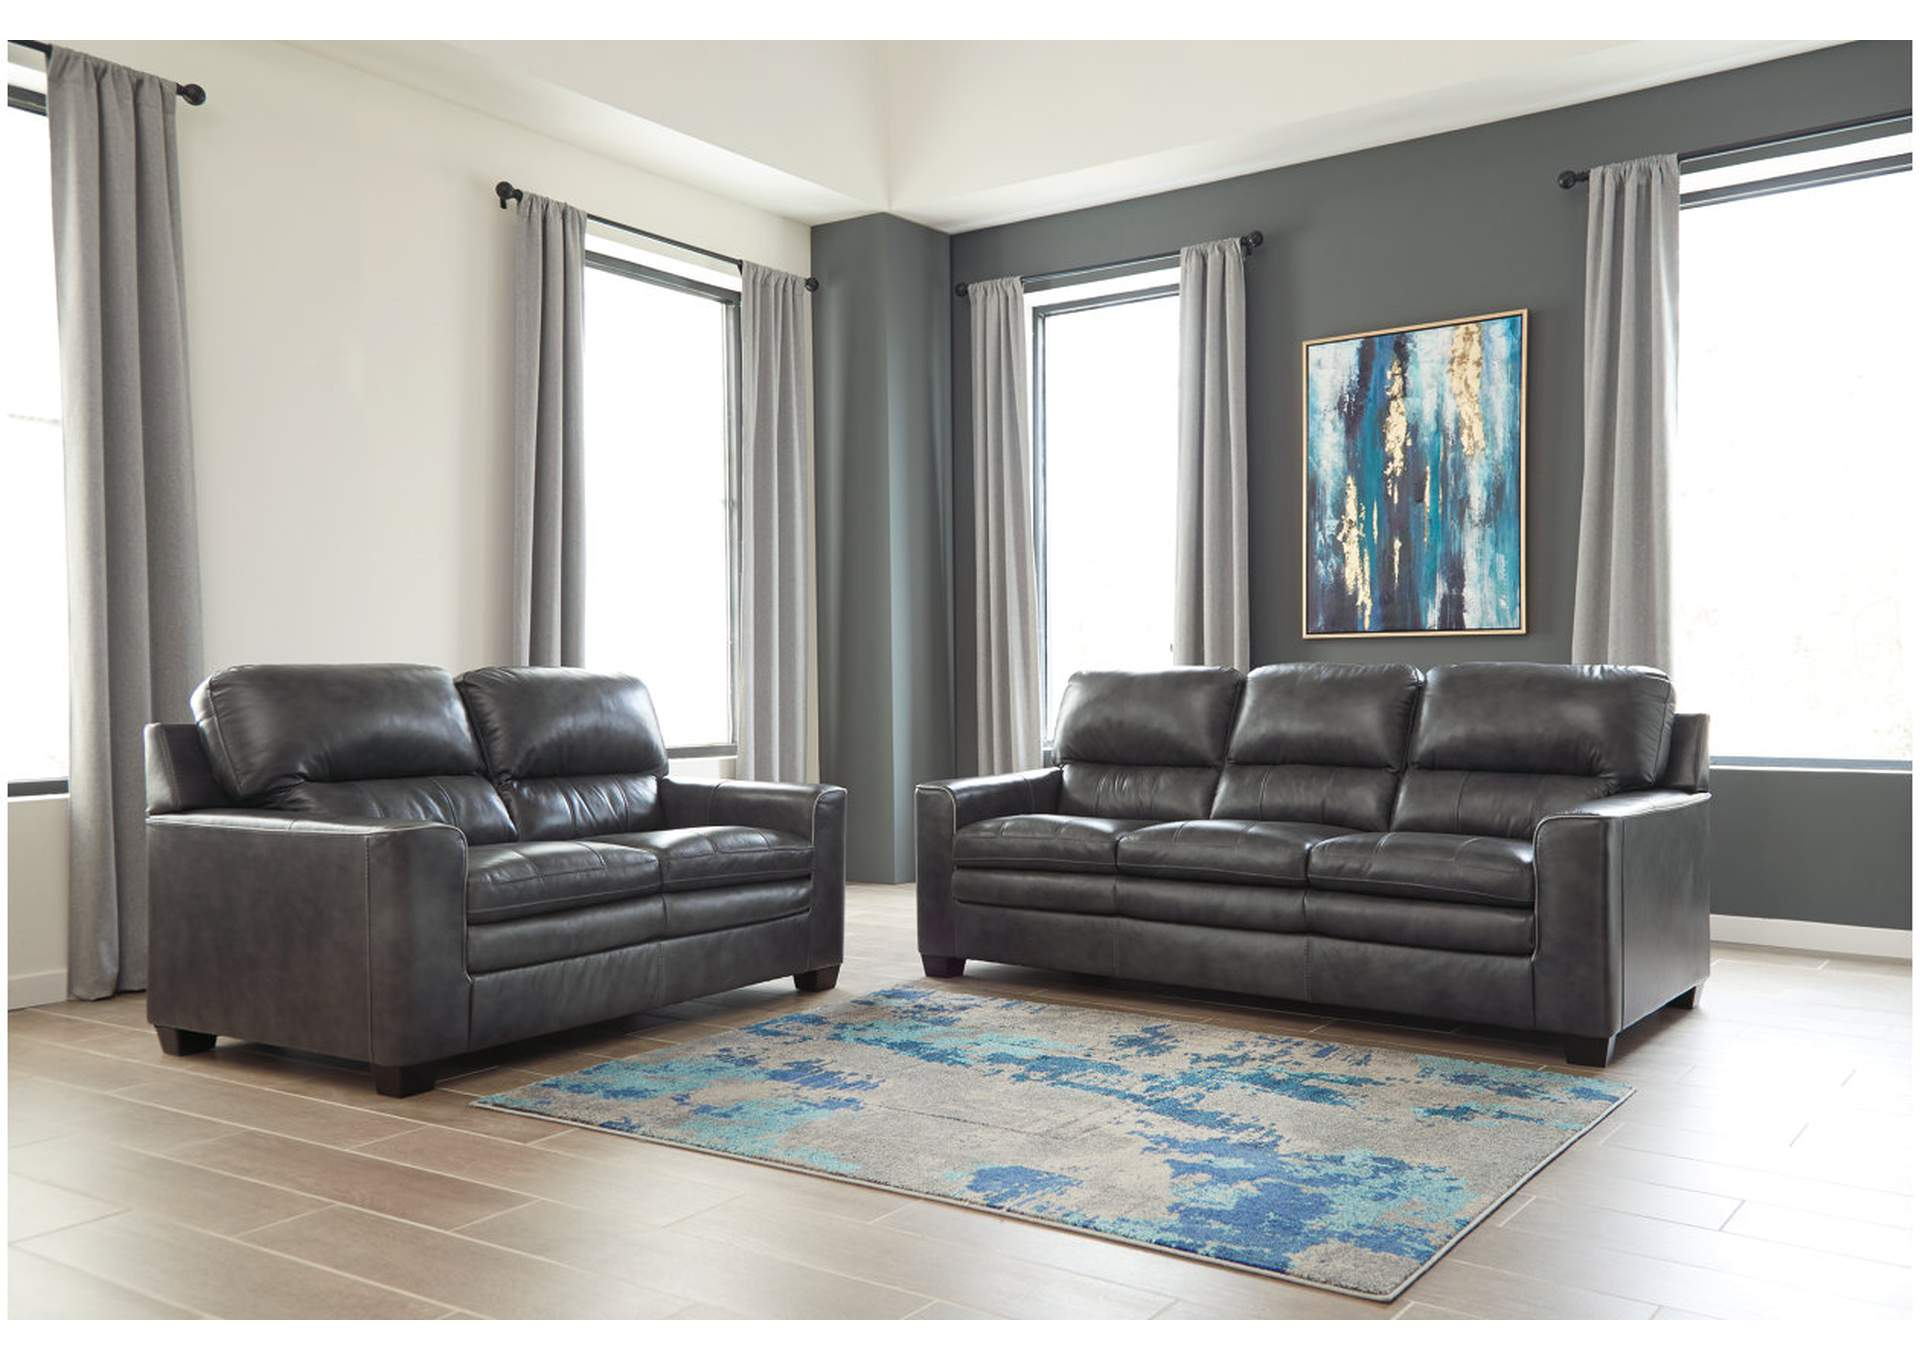 Gleason Charcoal Sofa & Loveseat,Signature Design By Ashley